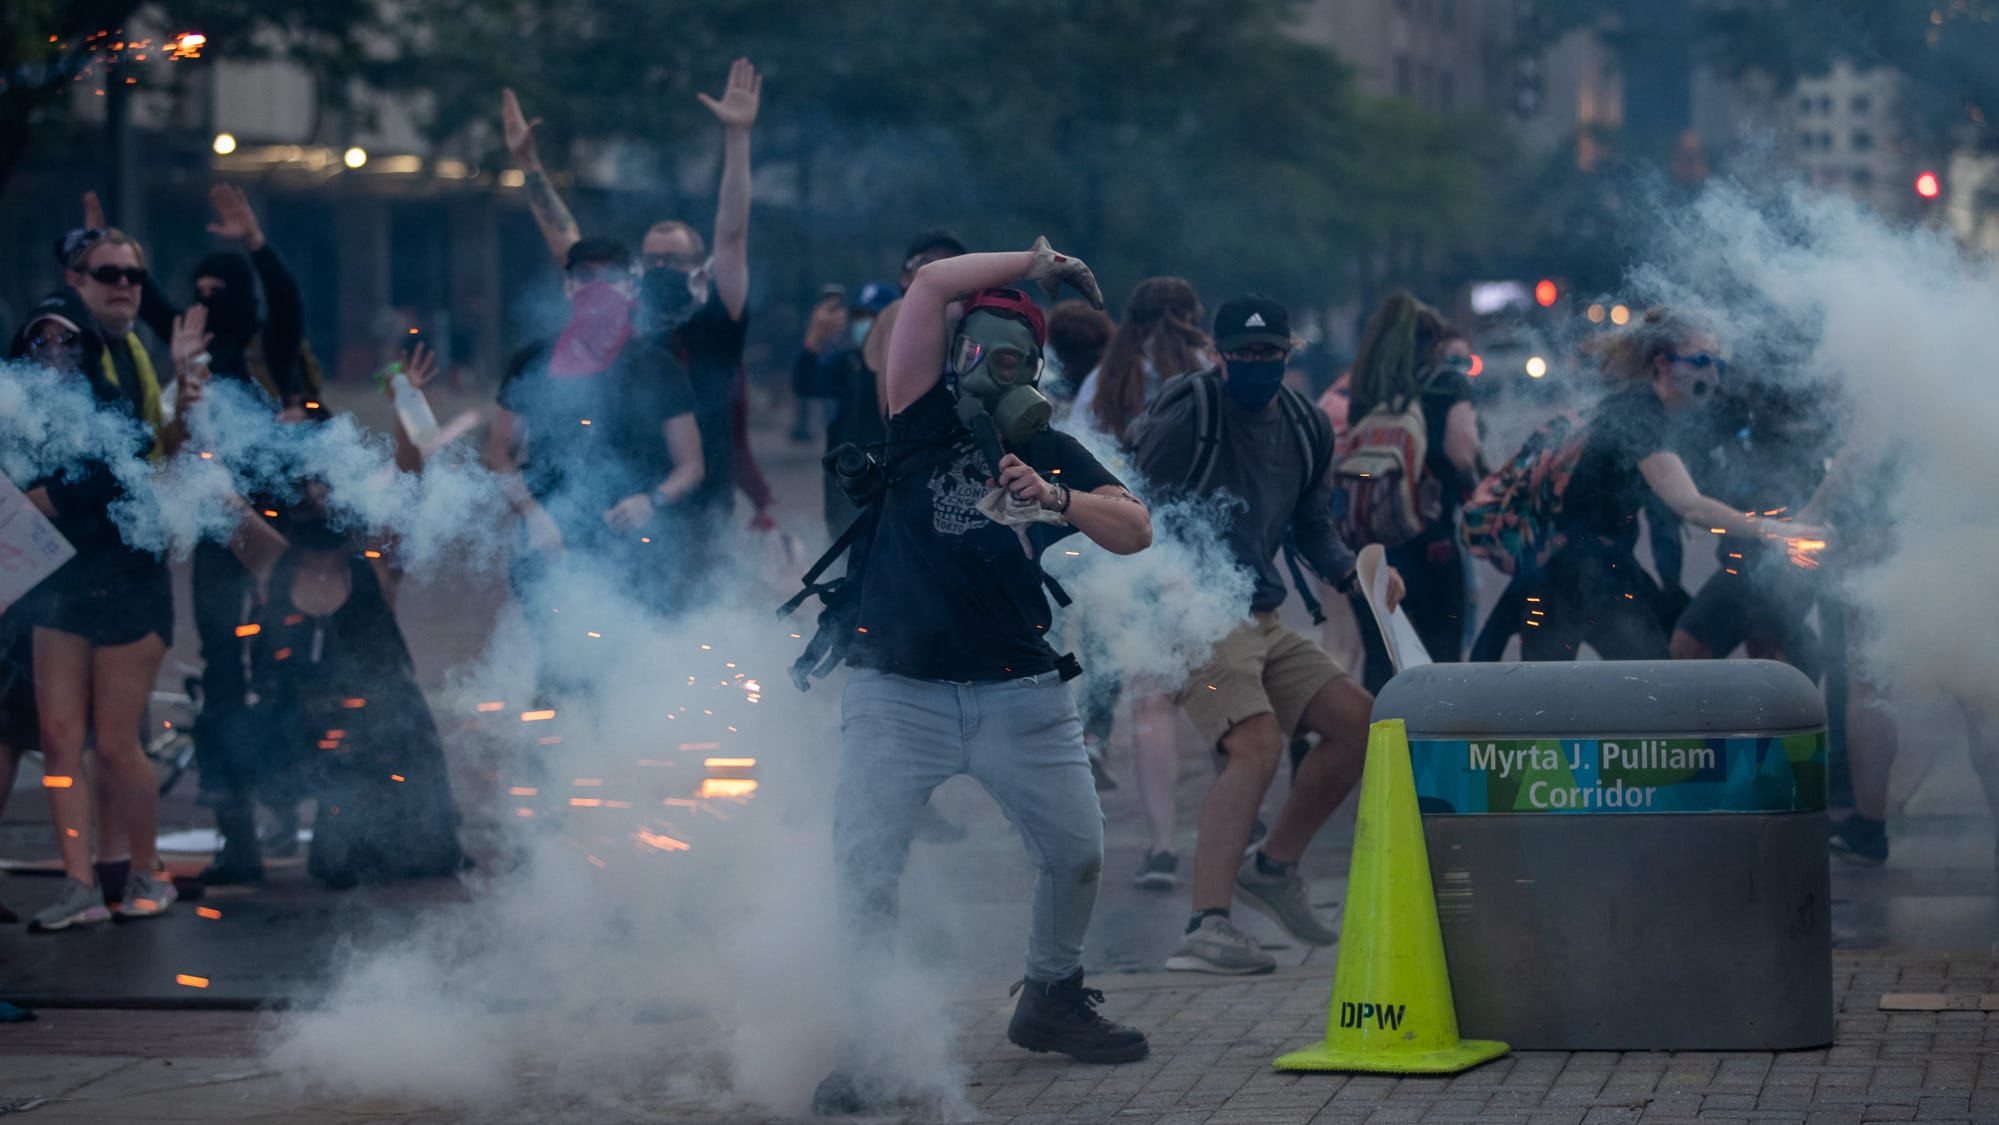 indianapolis downtown protests violence police racial unrest